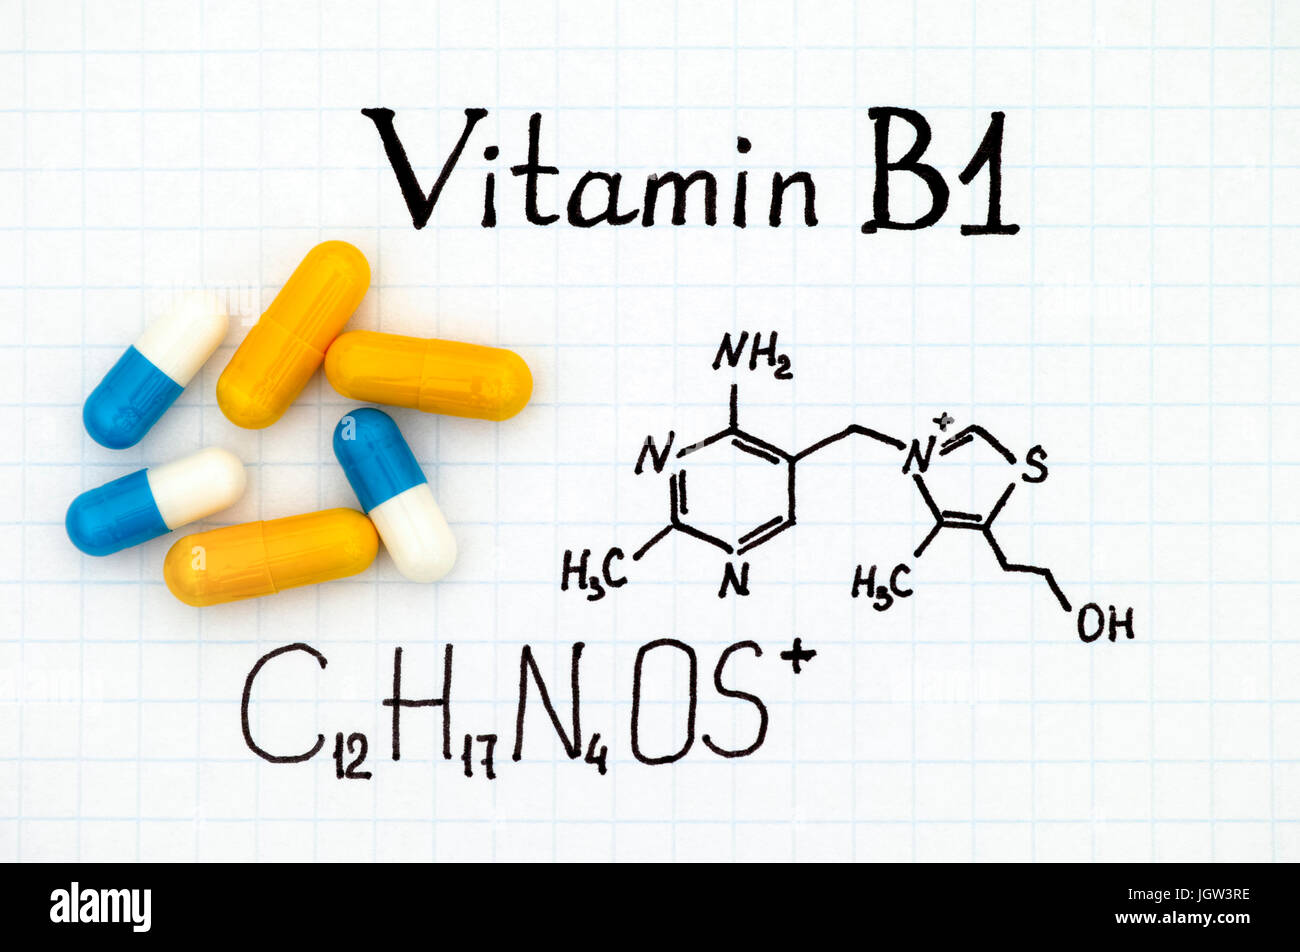 Chemical formula of Vitamin B1 and some pills. - Stock Image